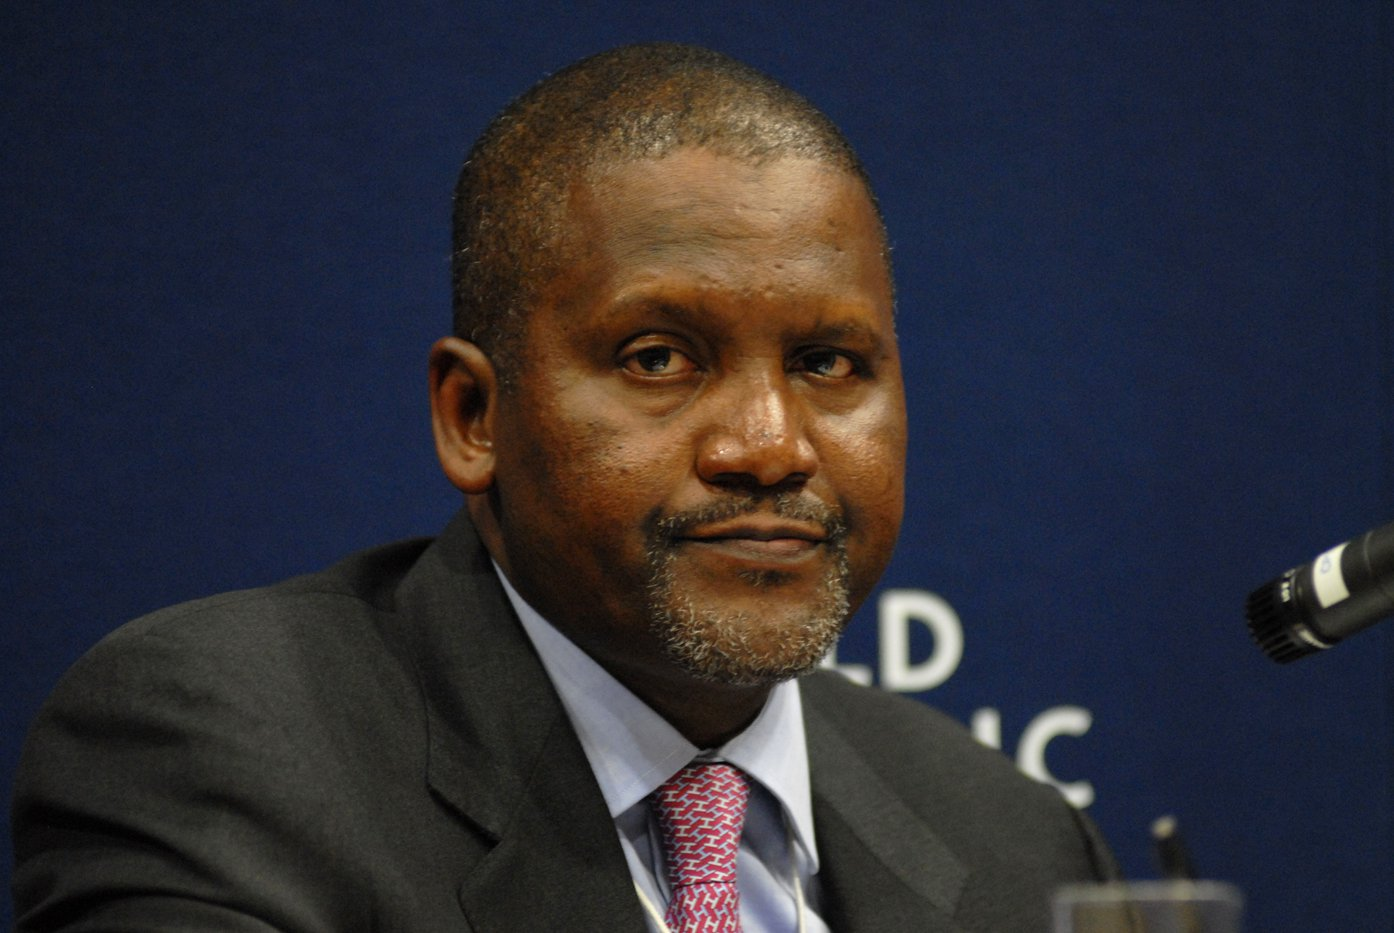 Forbes' Africa Billionaires: Dangote's wealth down by $2b as Adenuga closes gap